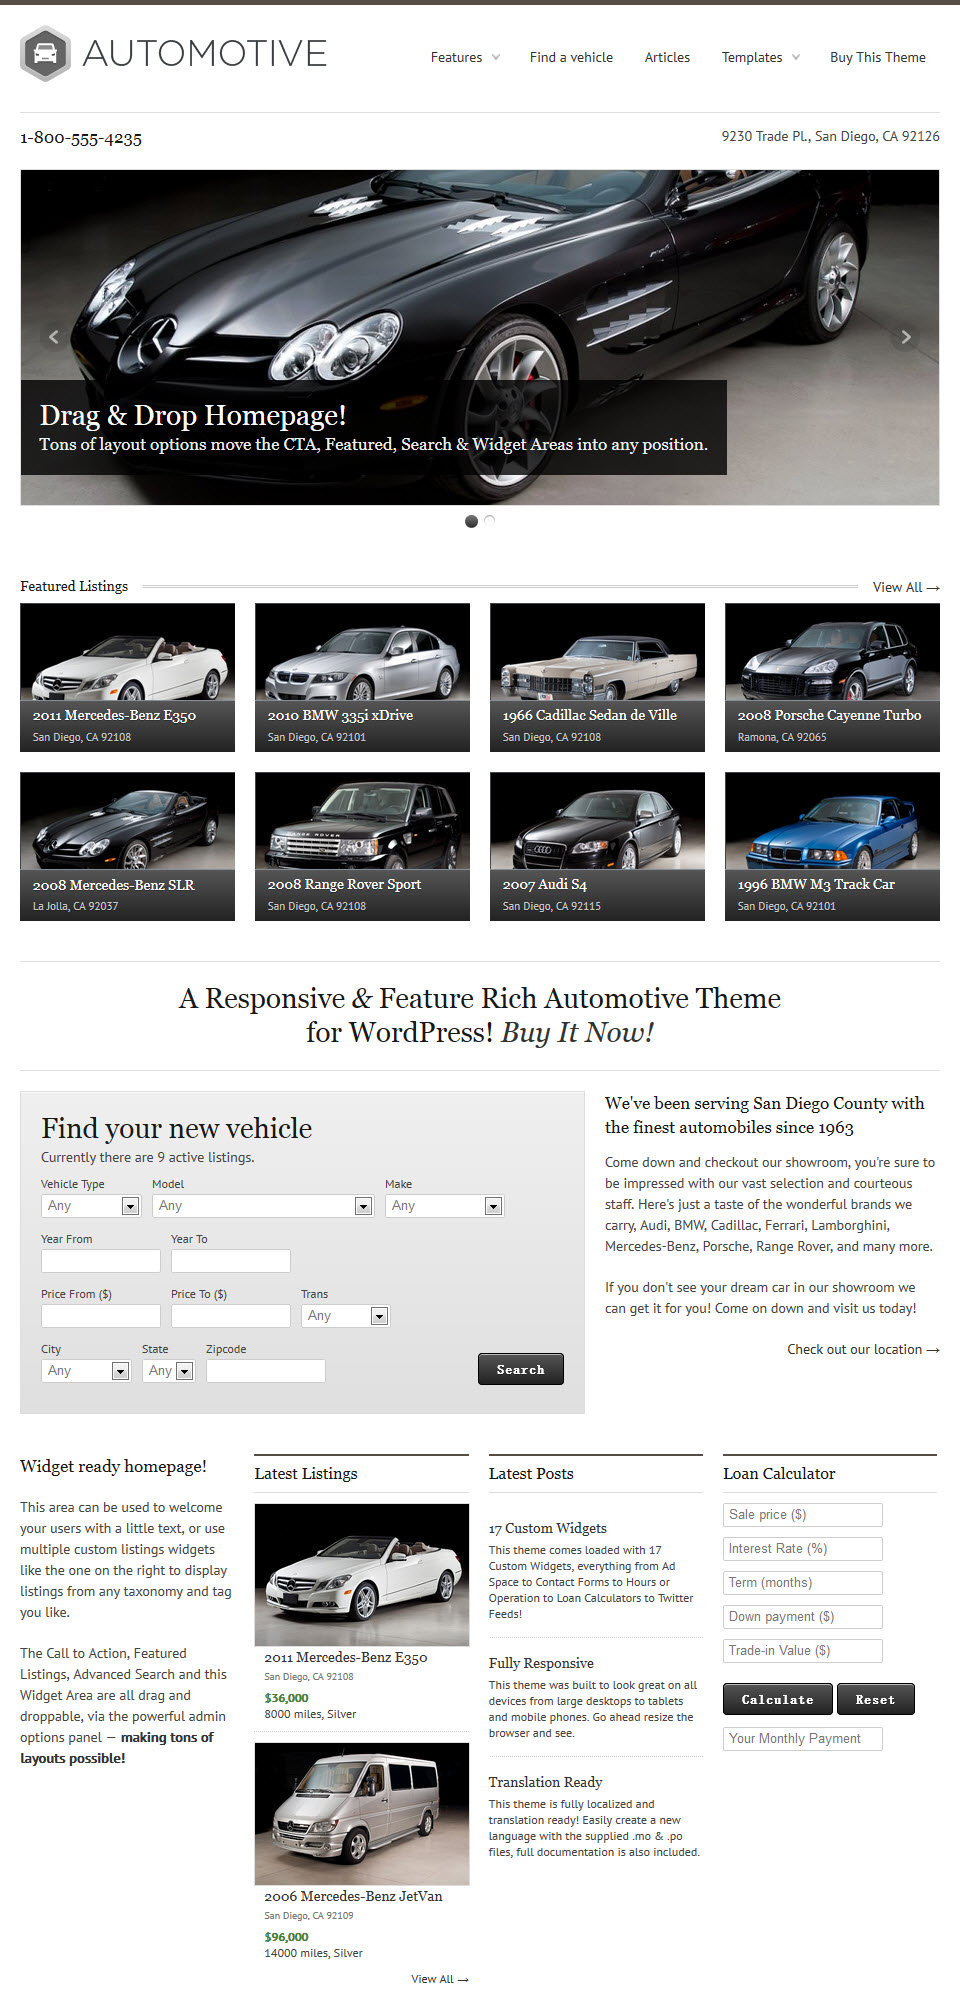 WP Pro Automotive Theme